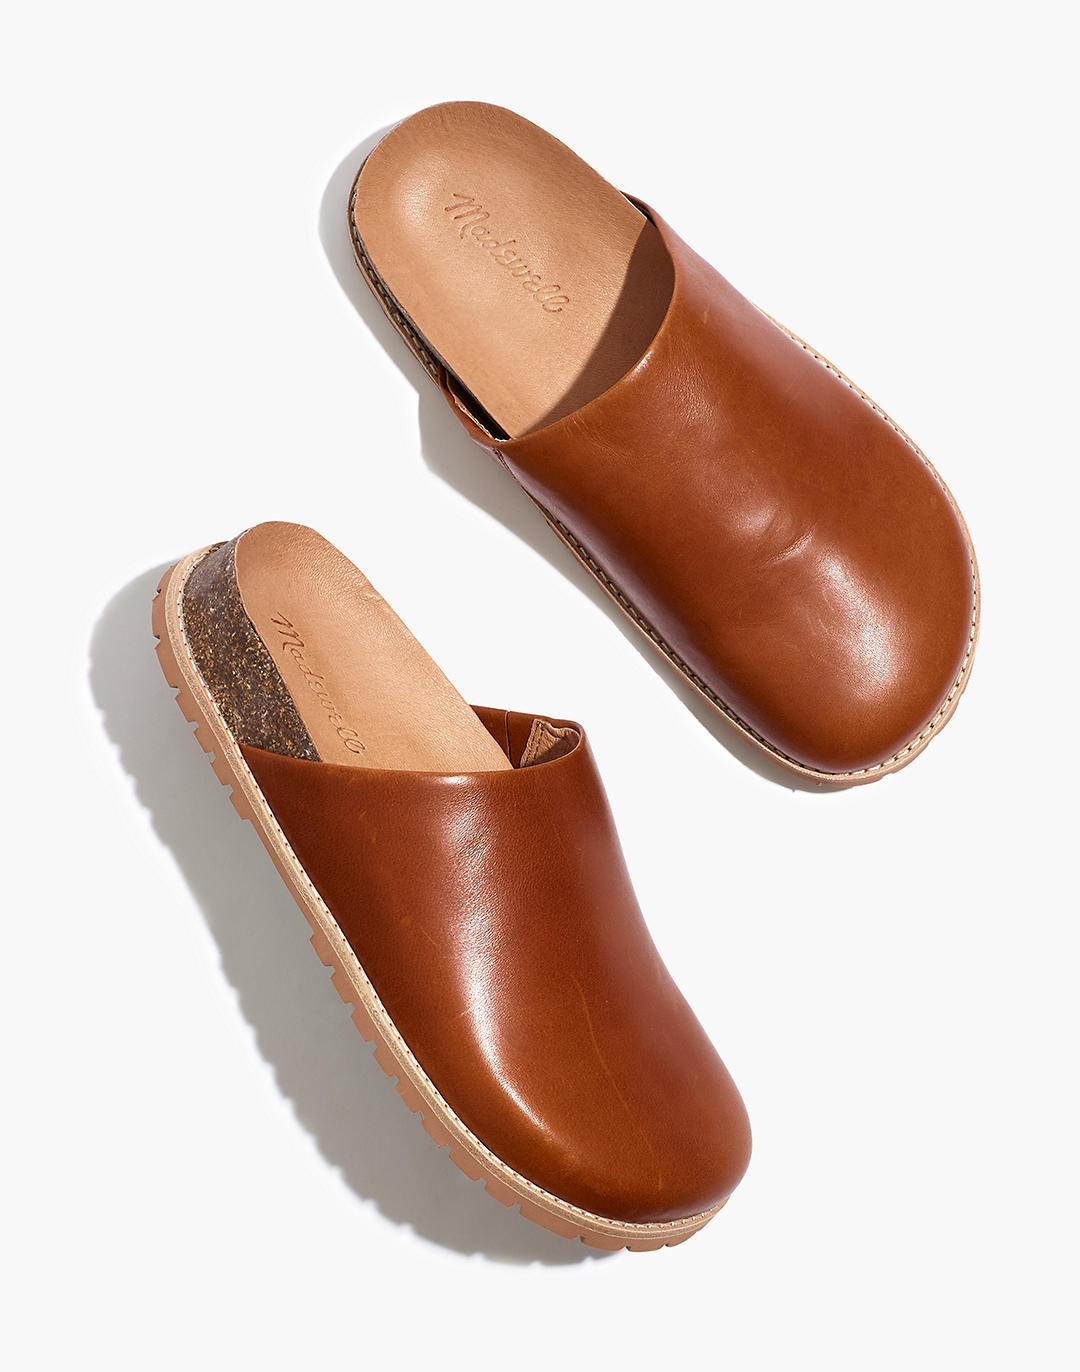 The Layne Clog Mule in Leather